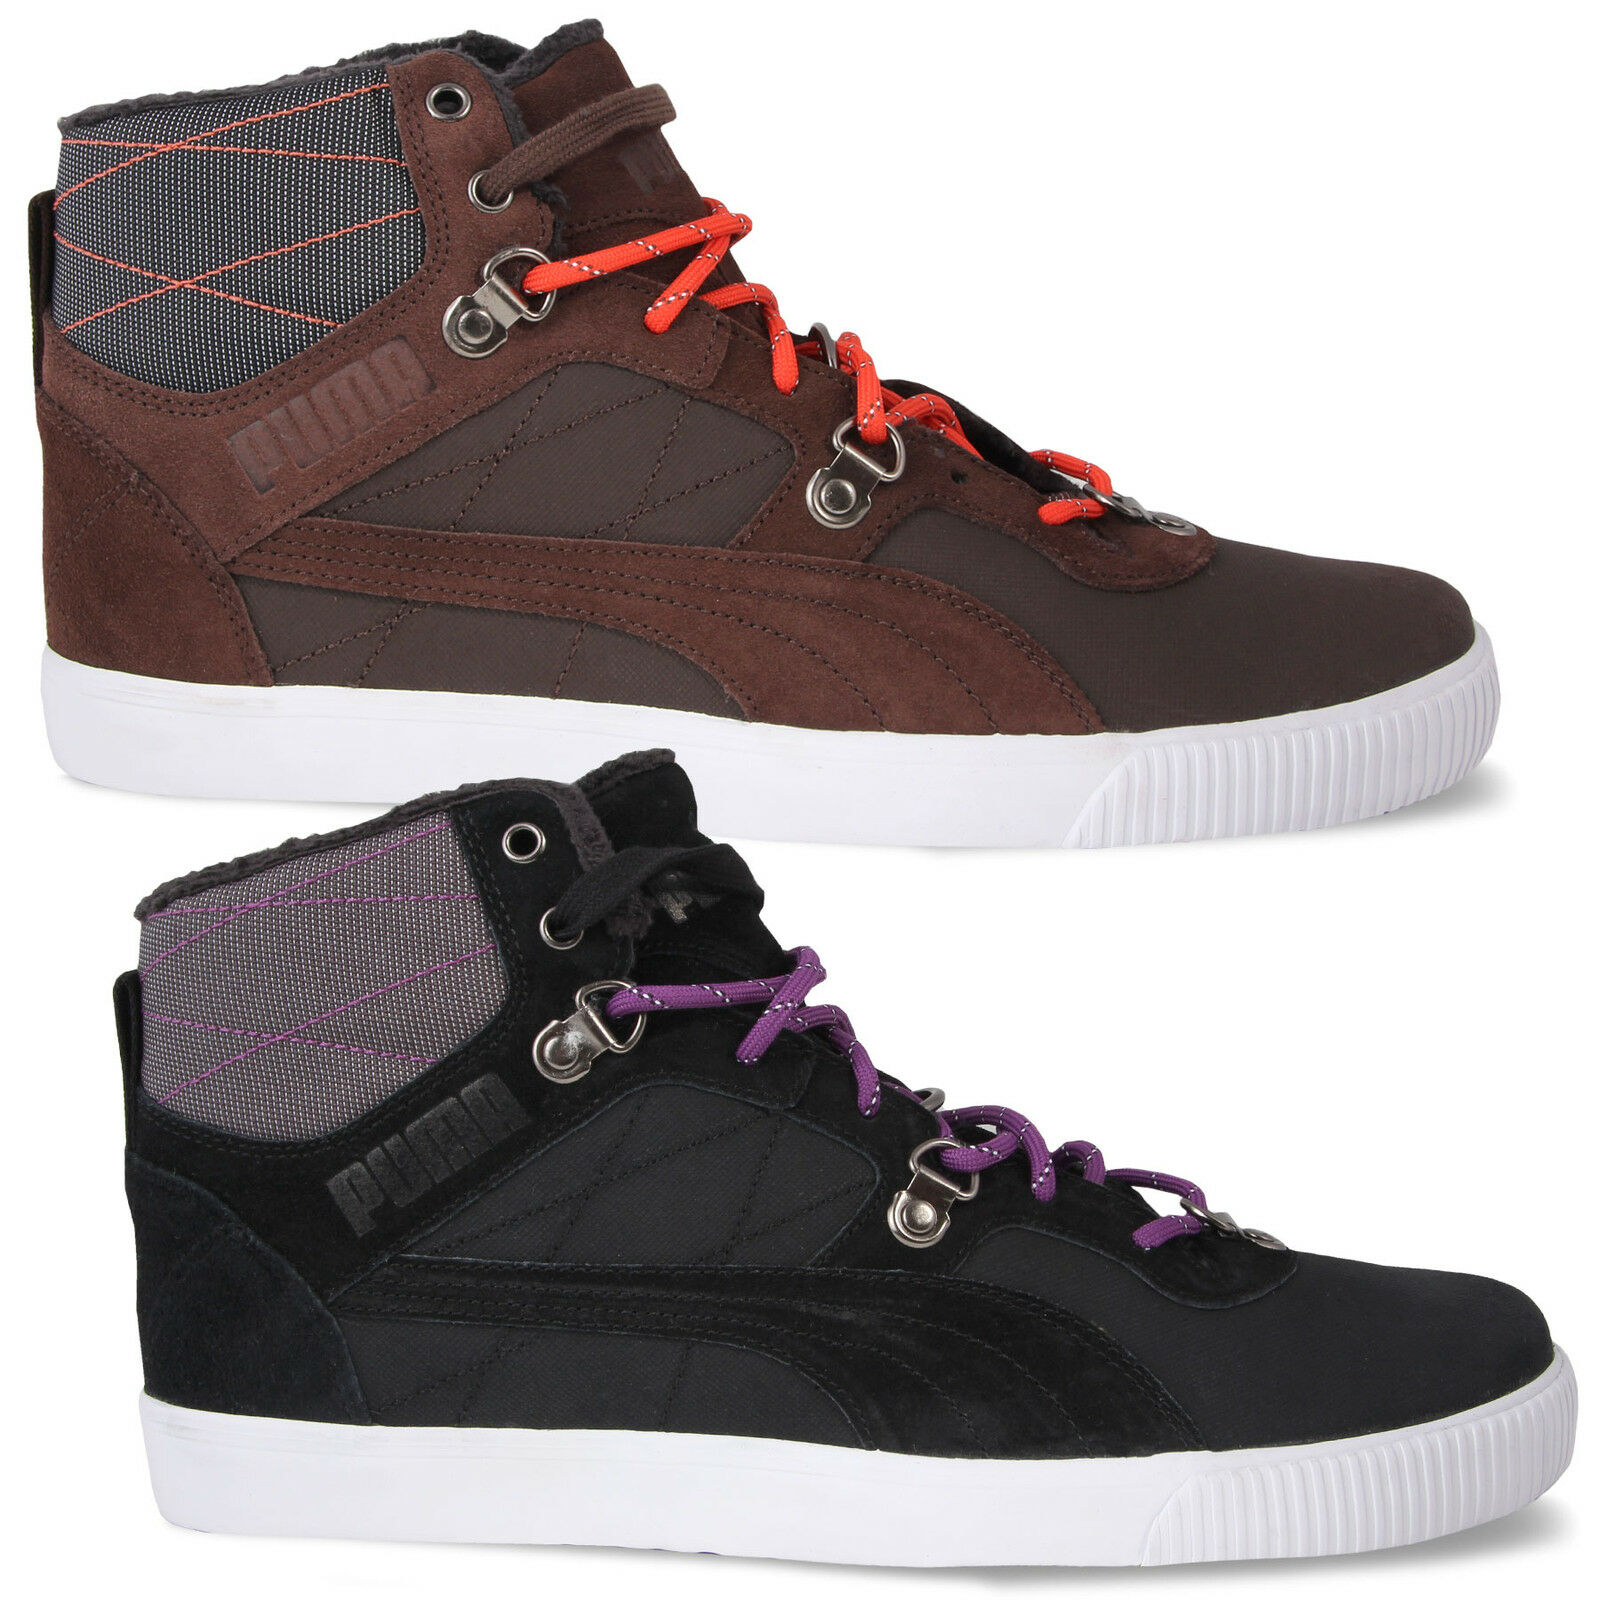 Puma mid Sneaker shoes Tipton Winter shoes Boots Padded Boots 40 - 47